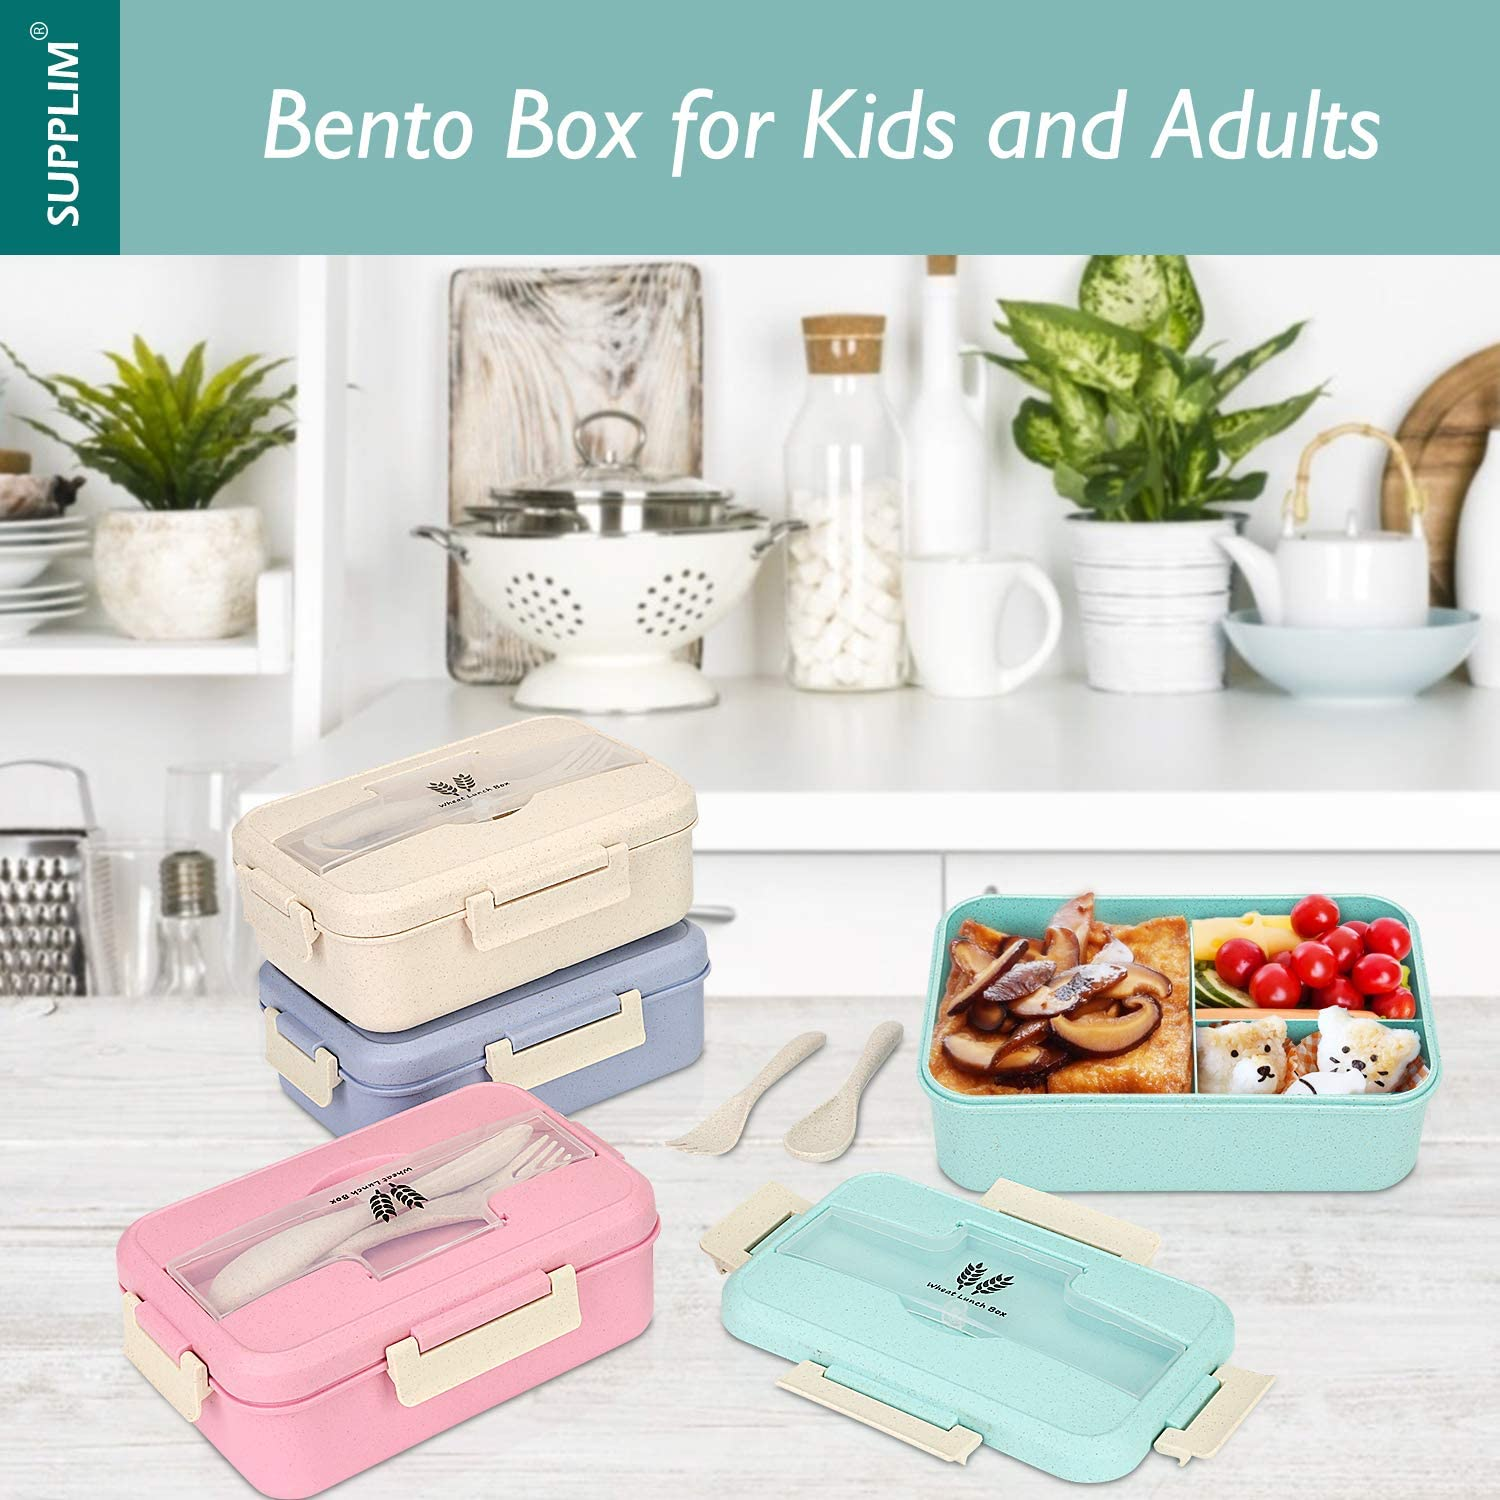 Supplim Bento Box For Kids /& Adults With 3 Compartment,Wheat Fiber Lunch Box Leak Proof Lunch Container With Spoon /& Fork Blue